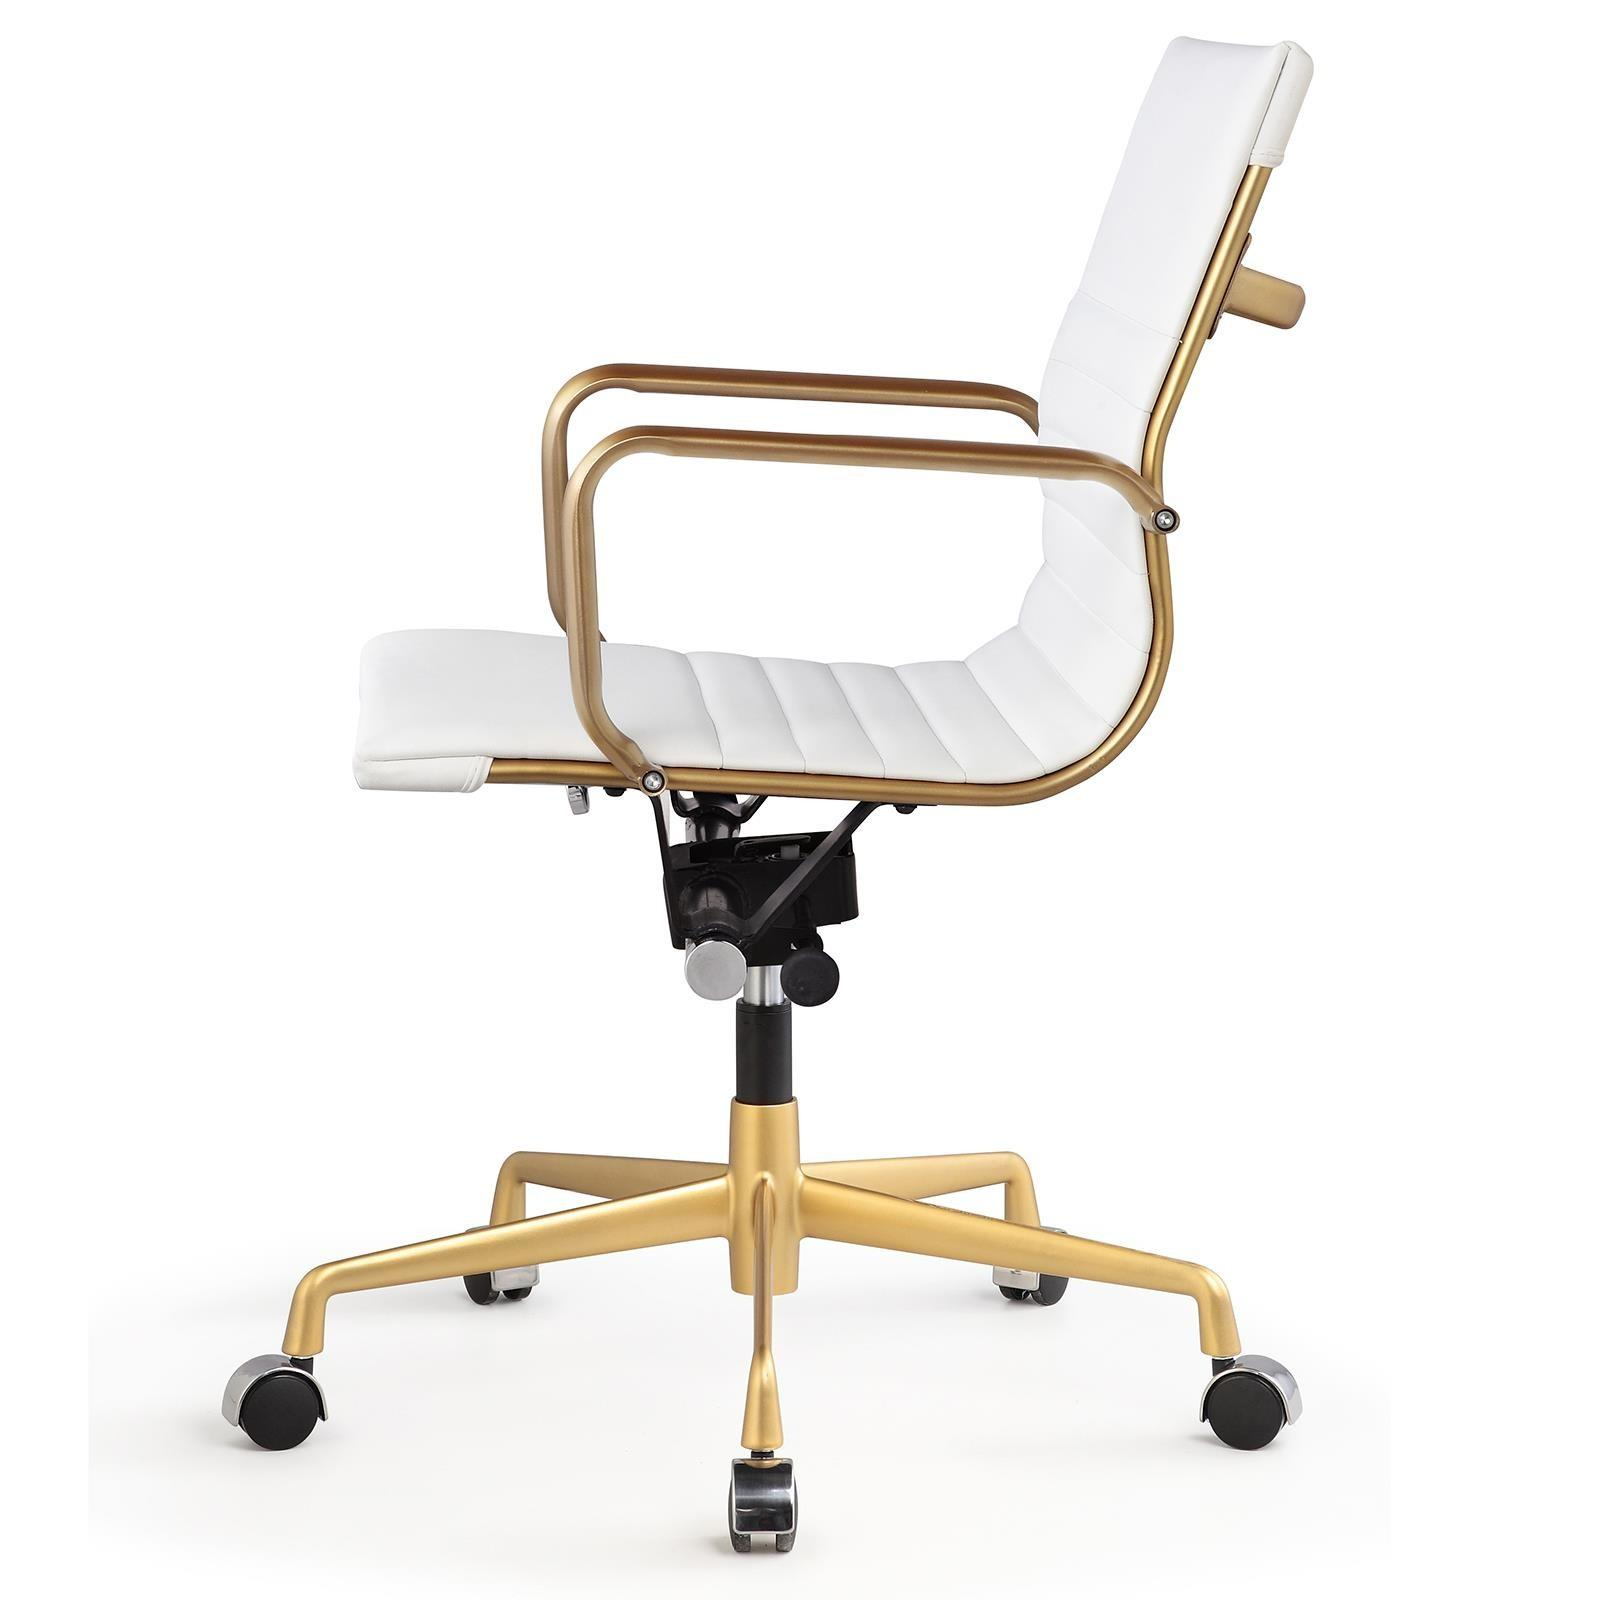 Meelano M348 Office Chair Gold White Vegan Leather